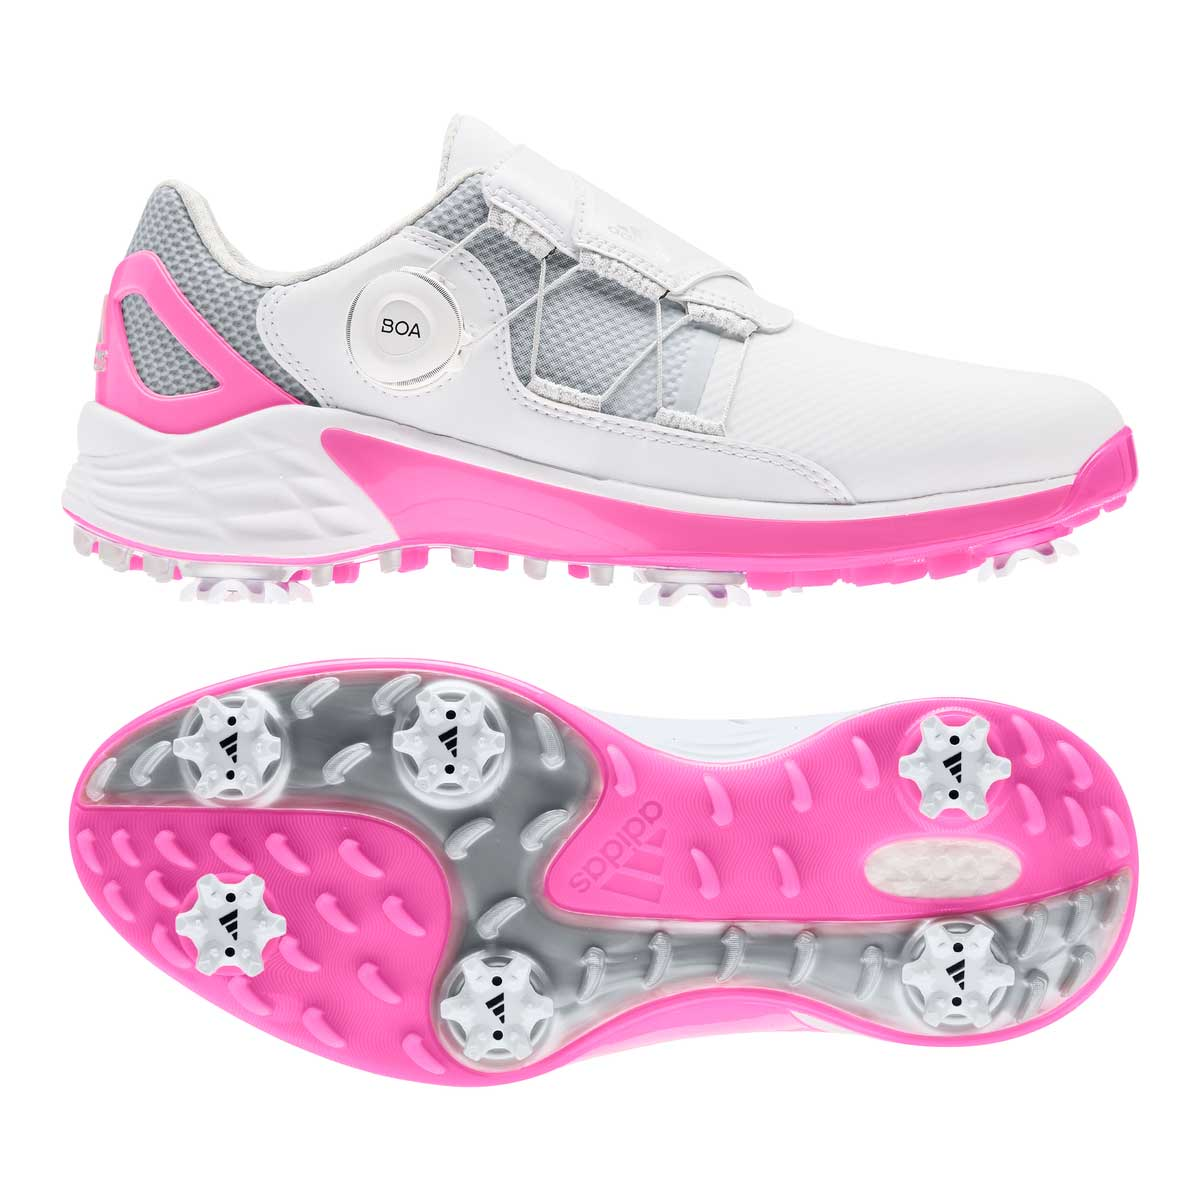 Adidas Women's ZG21 BOA White/Screaming Pink Golf Shoe